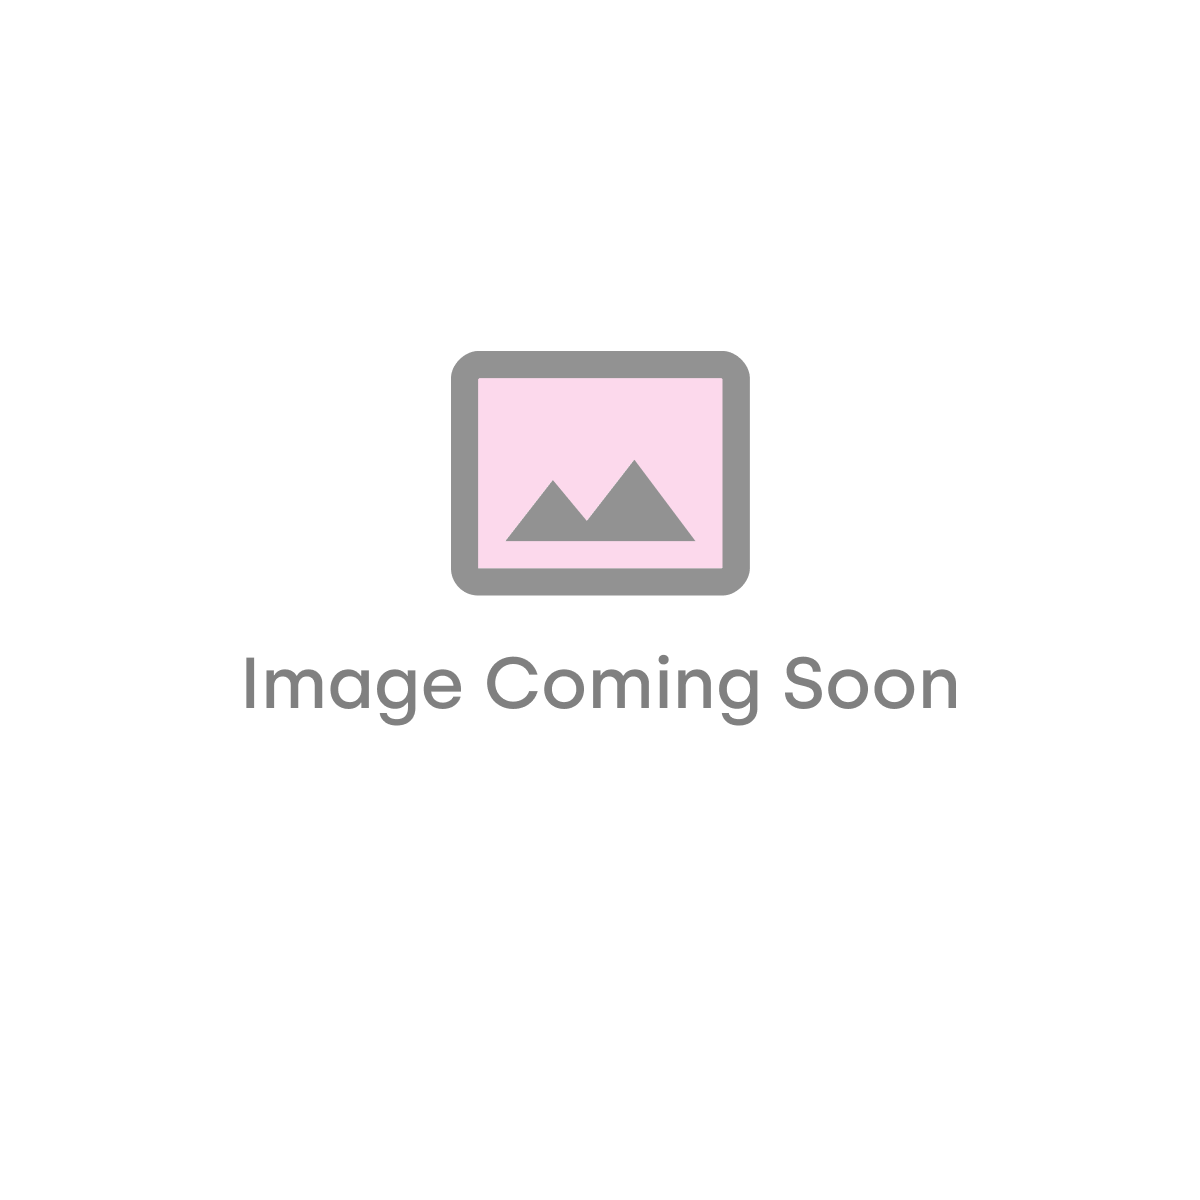 Ramsden & Mosley Anglesey Square 1700mm Double Ended Freestanding Bath  (14940)